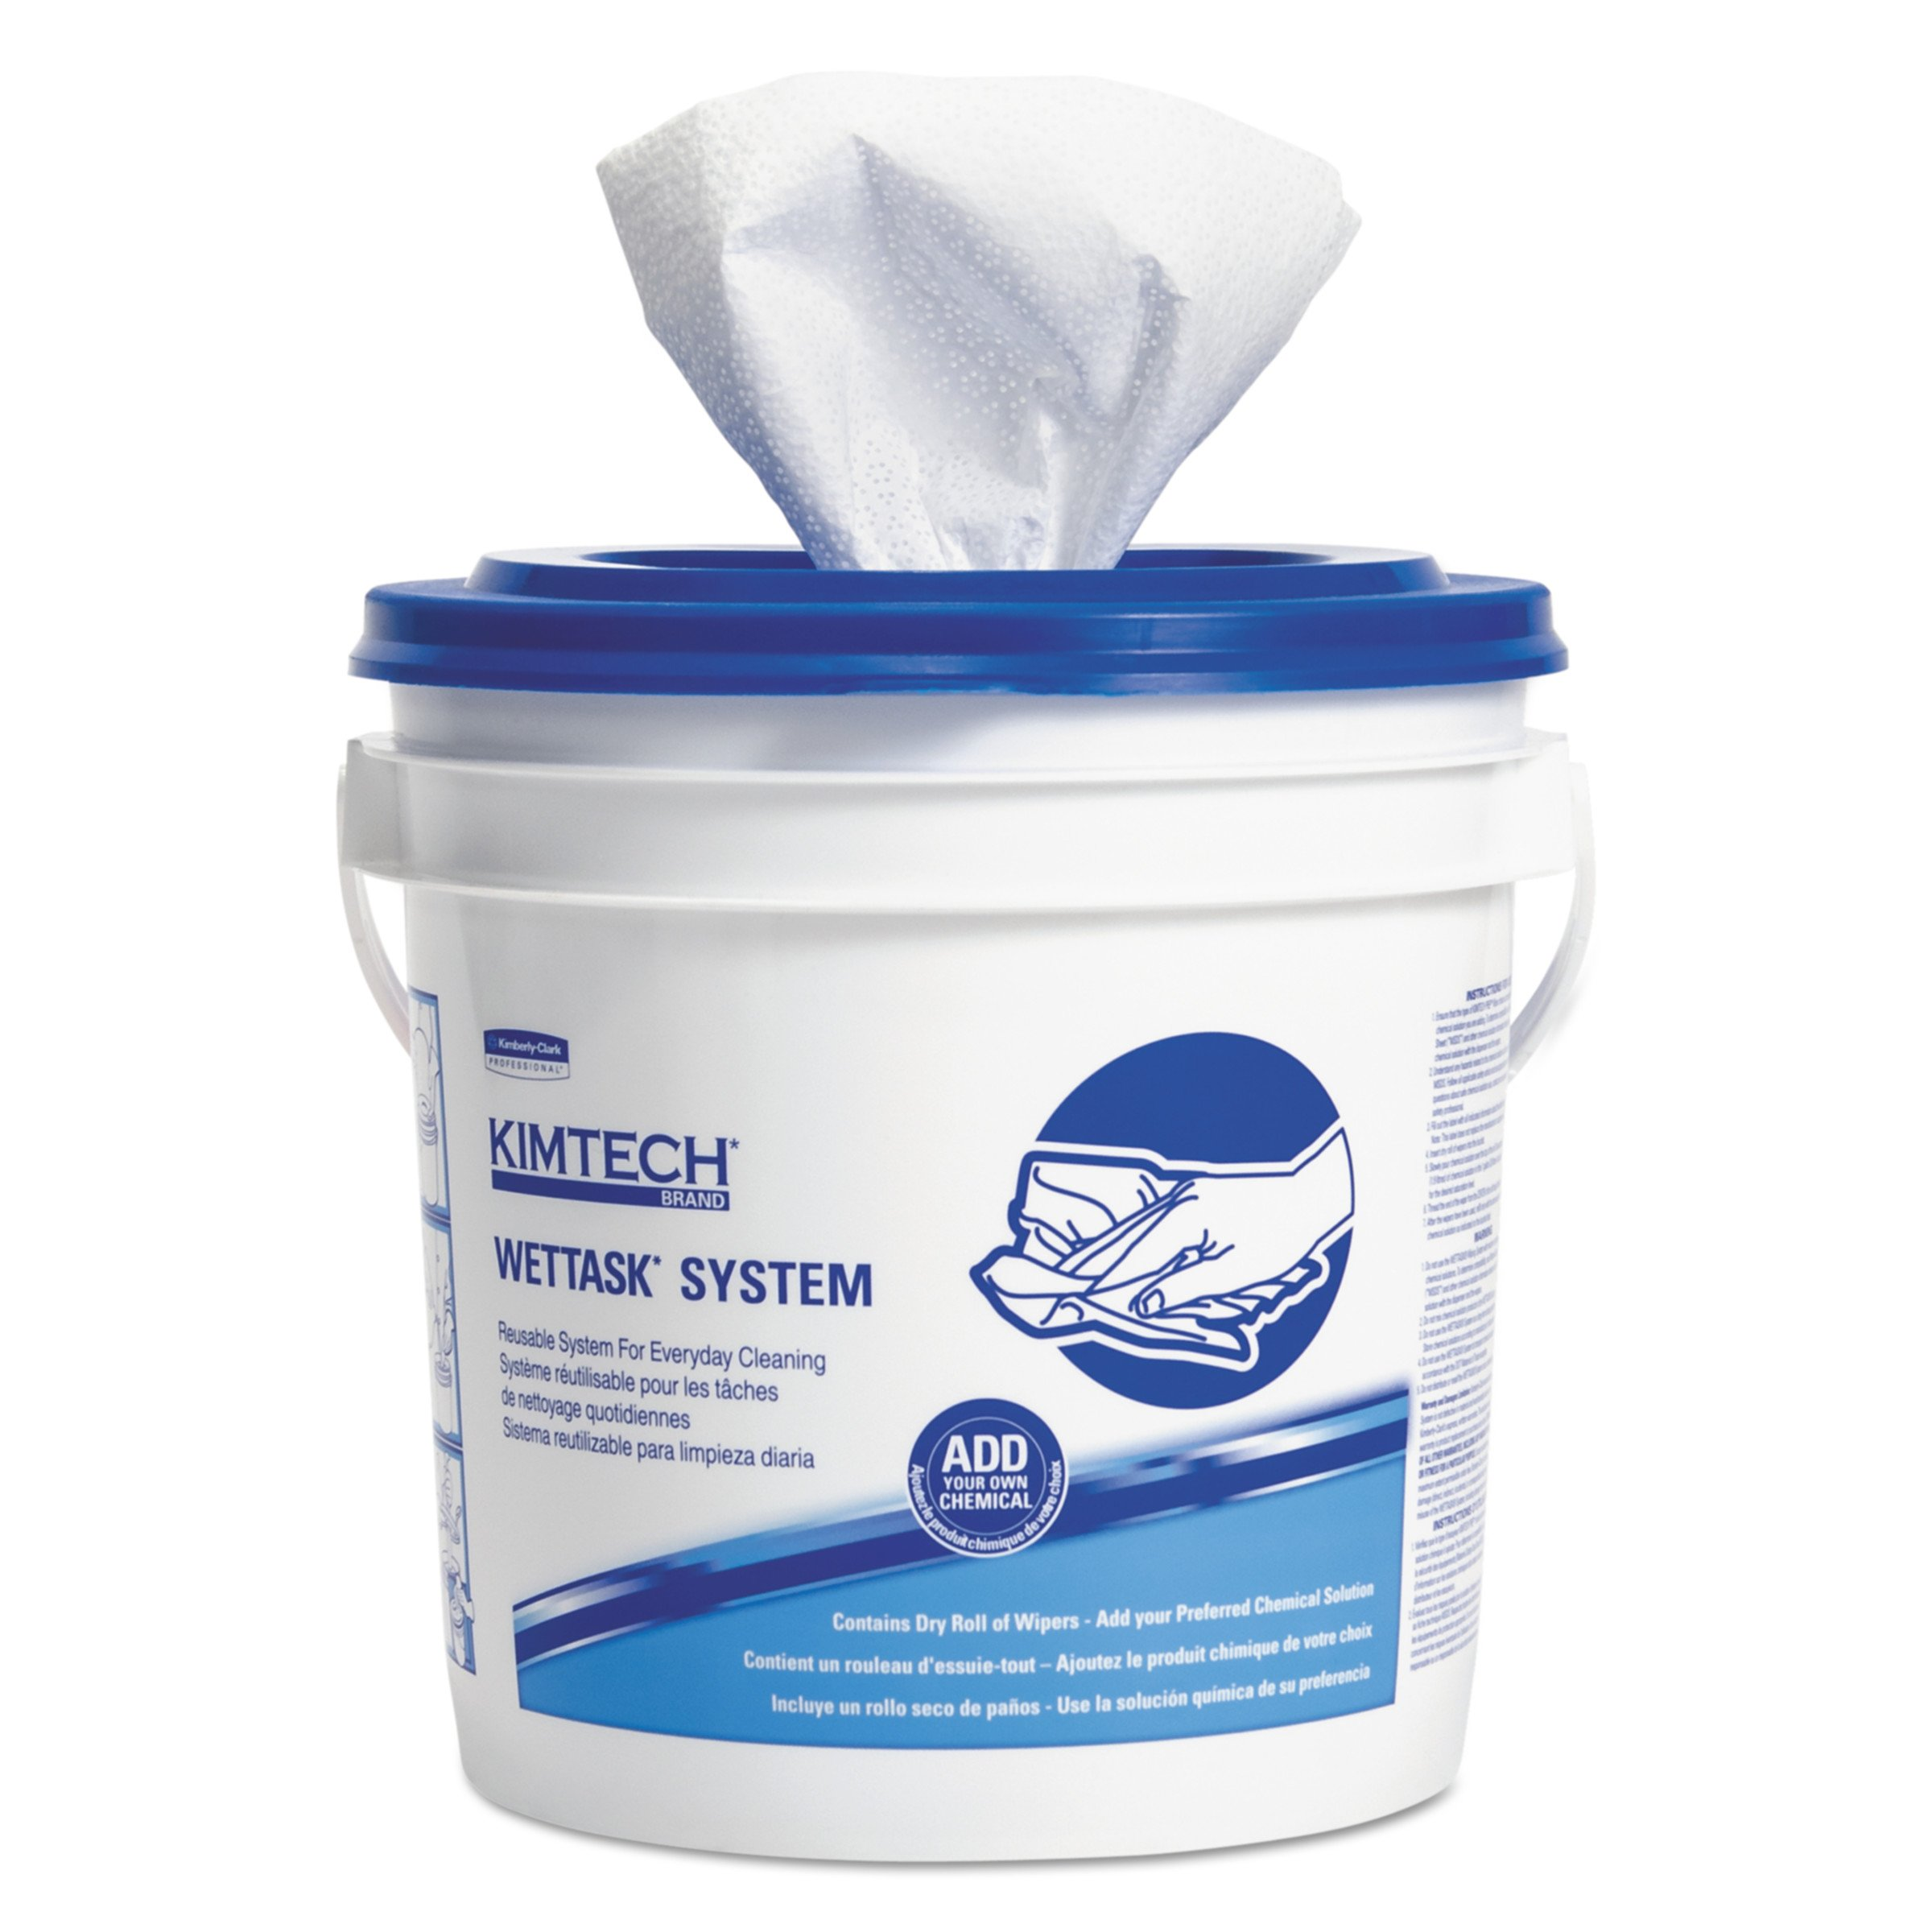 KIMTECH 06411 White Wipers for Bleach, Disinfectants & Sanitizers (6 Rolls per Case)